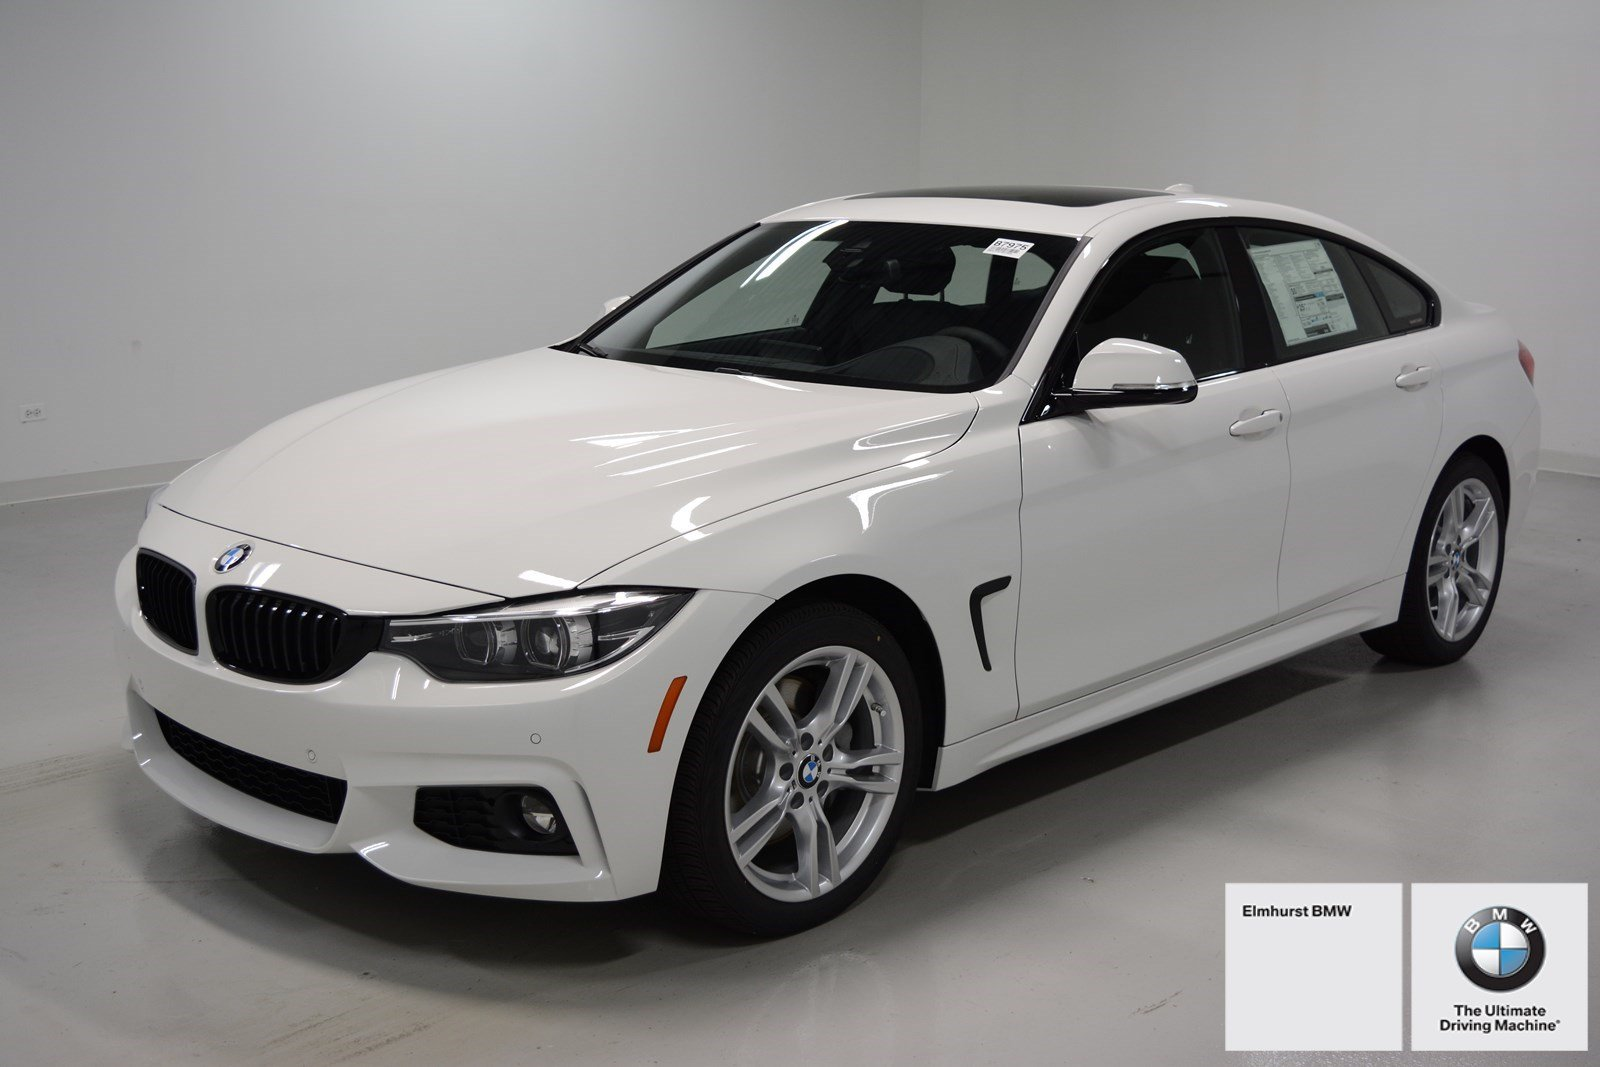 pre owned 2018 bmw 4 series 440i xdrive gran coupe hatchback in elmhurst b7975 elmhurst bmw. Black Bedroom Furniture Sets. Home Design Ideas